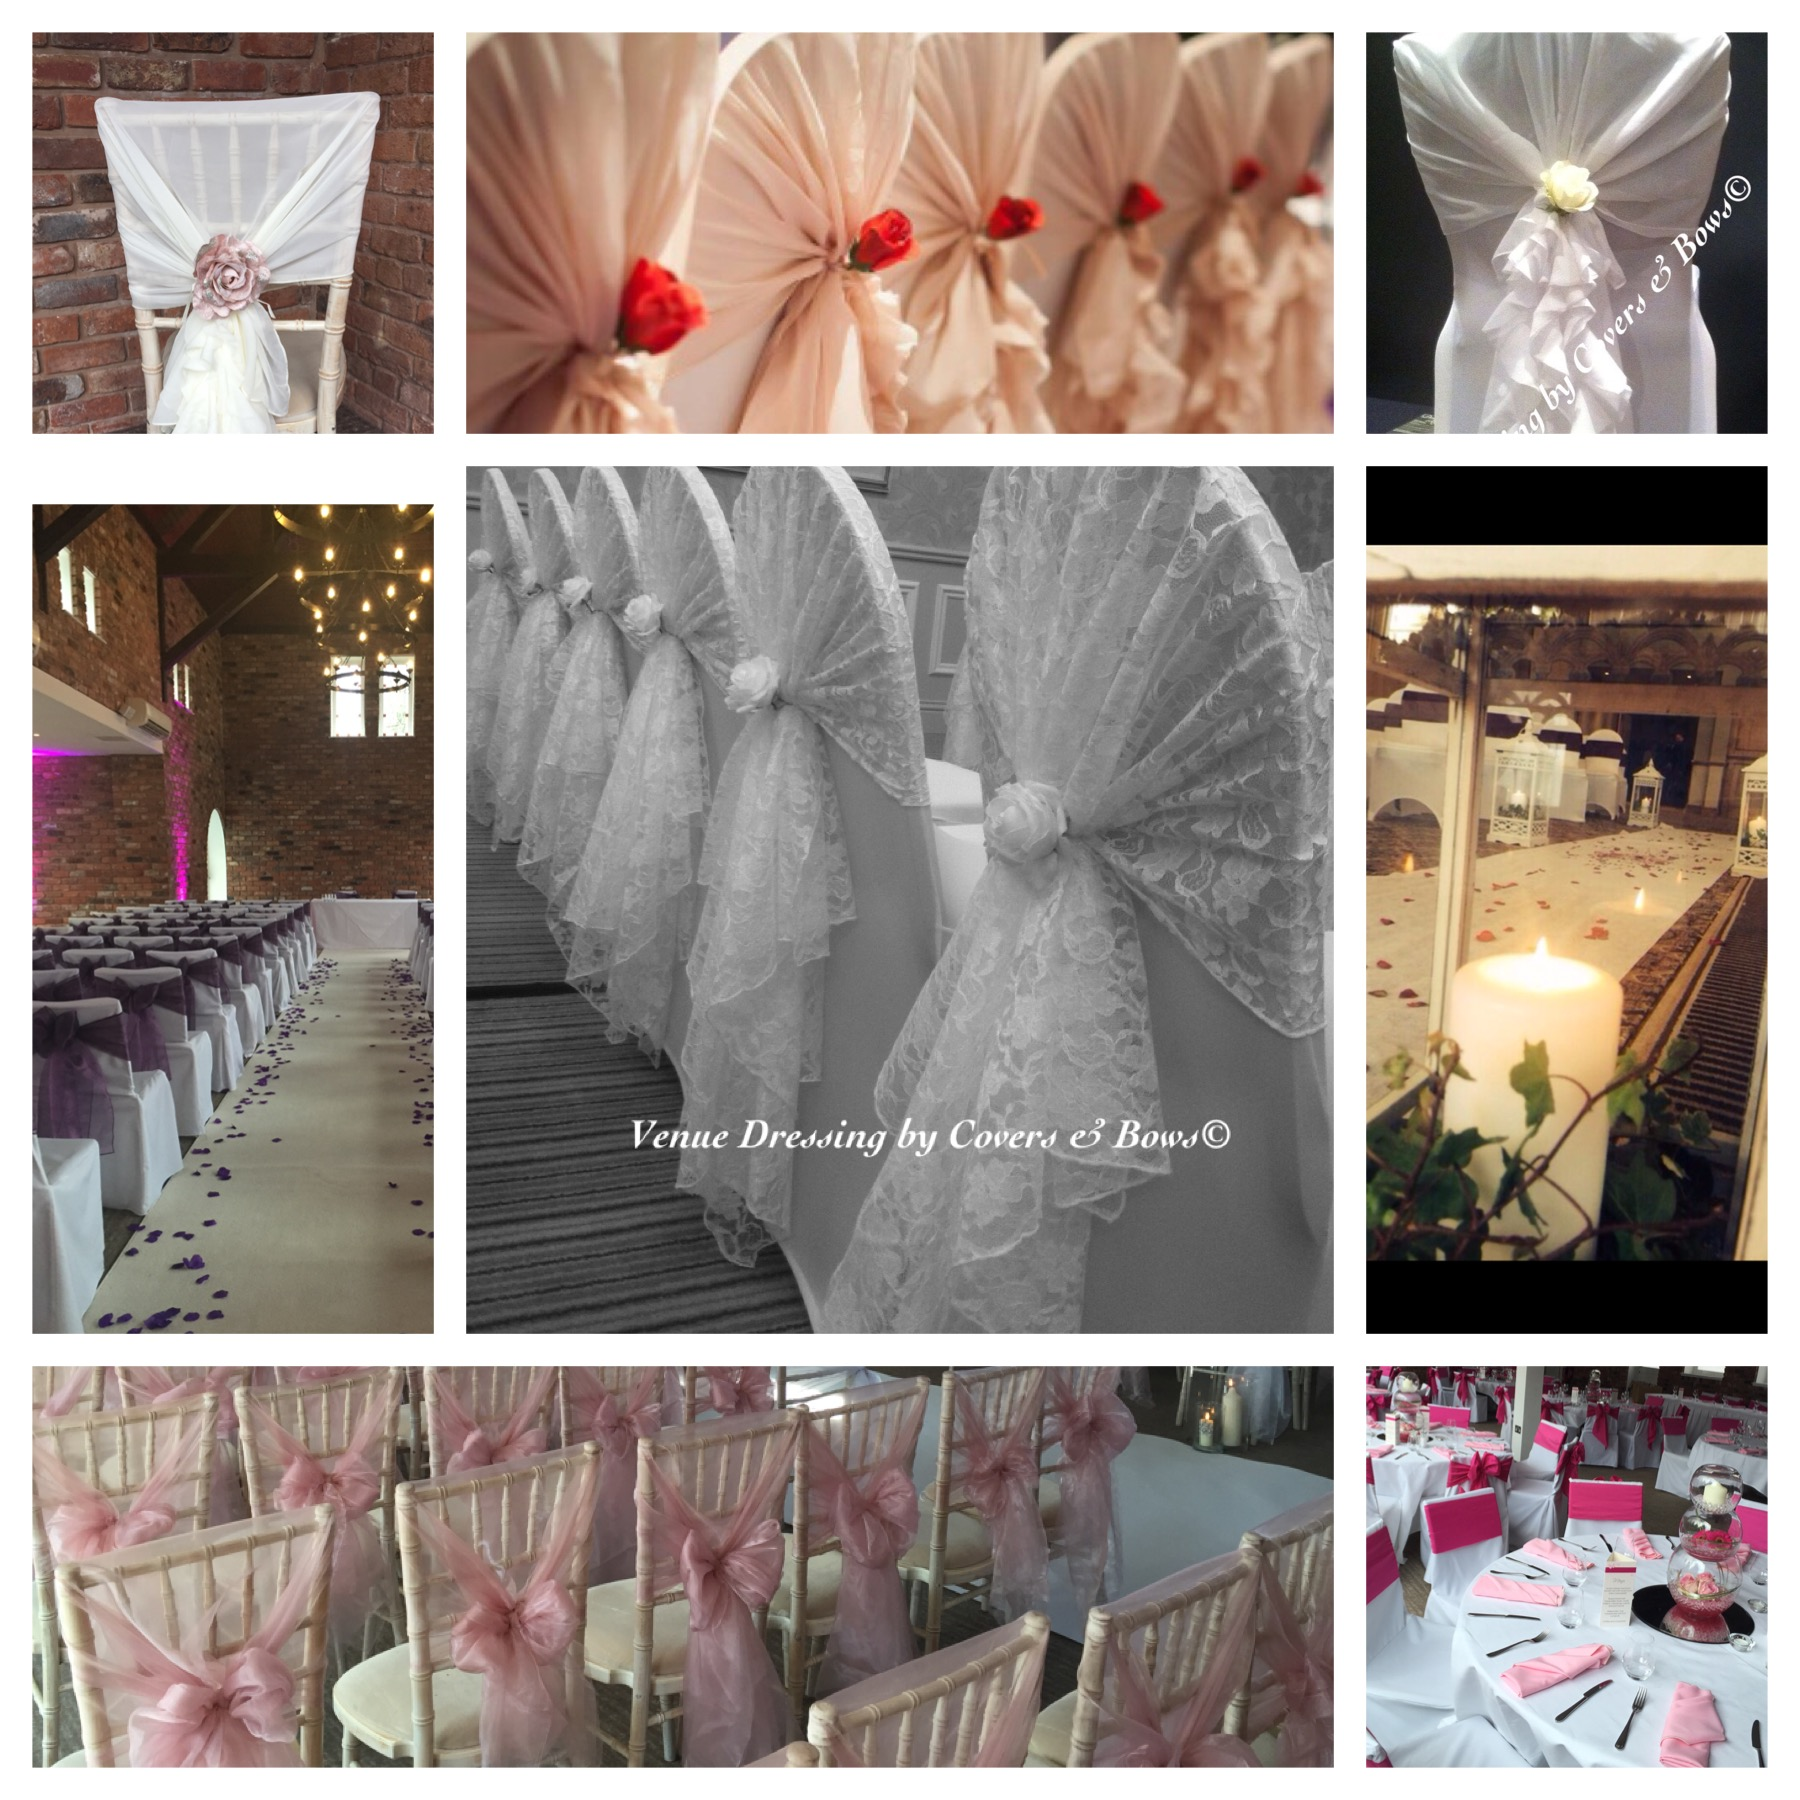 Covers & Bows Venue Dressing